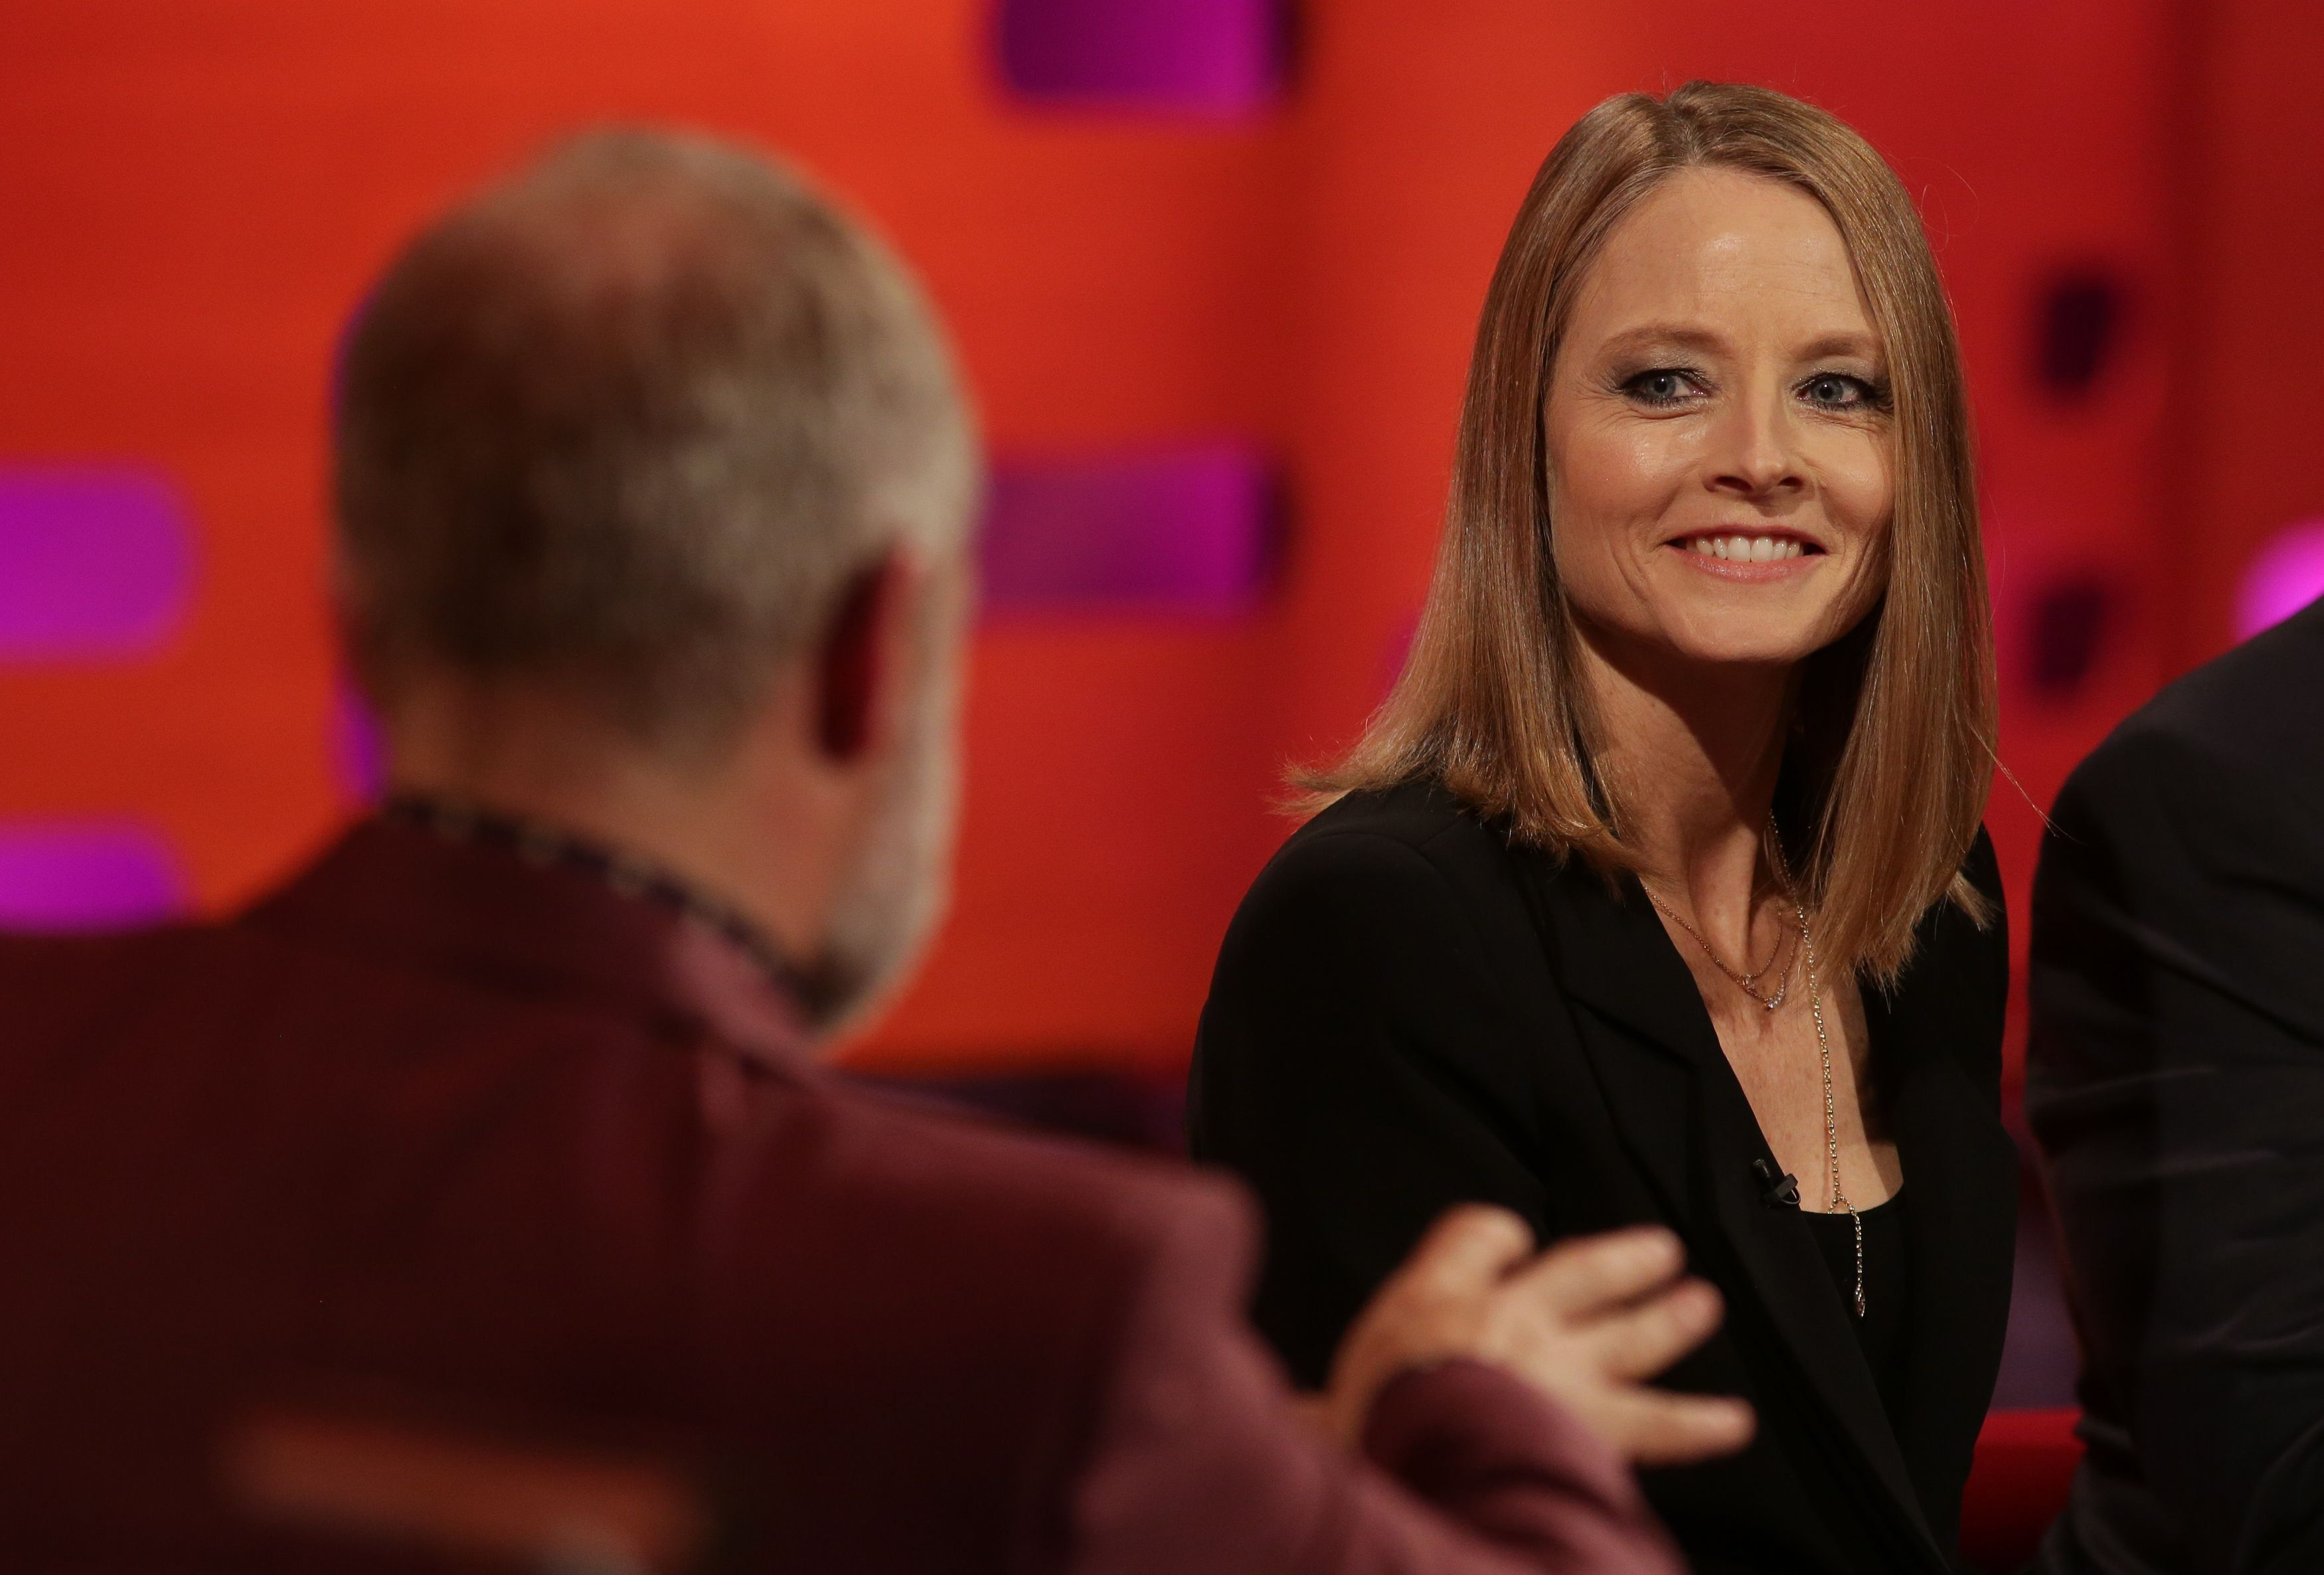 Jodie Foster Reveals She Never Spoke To Anthony Hopkins On 'Silence Of The Lambs'